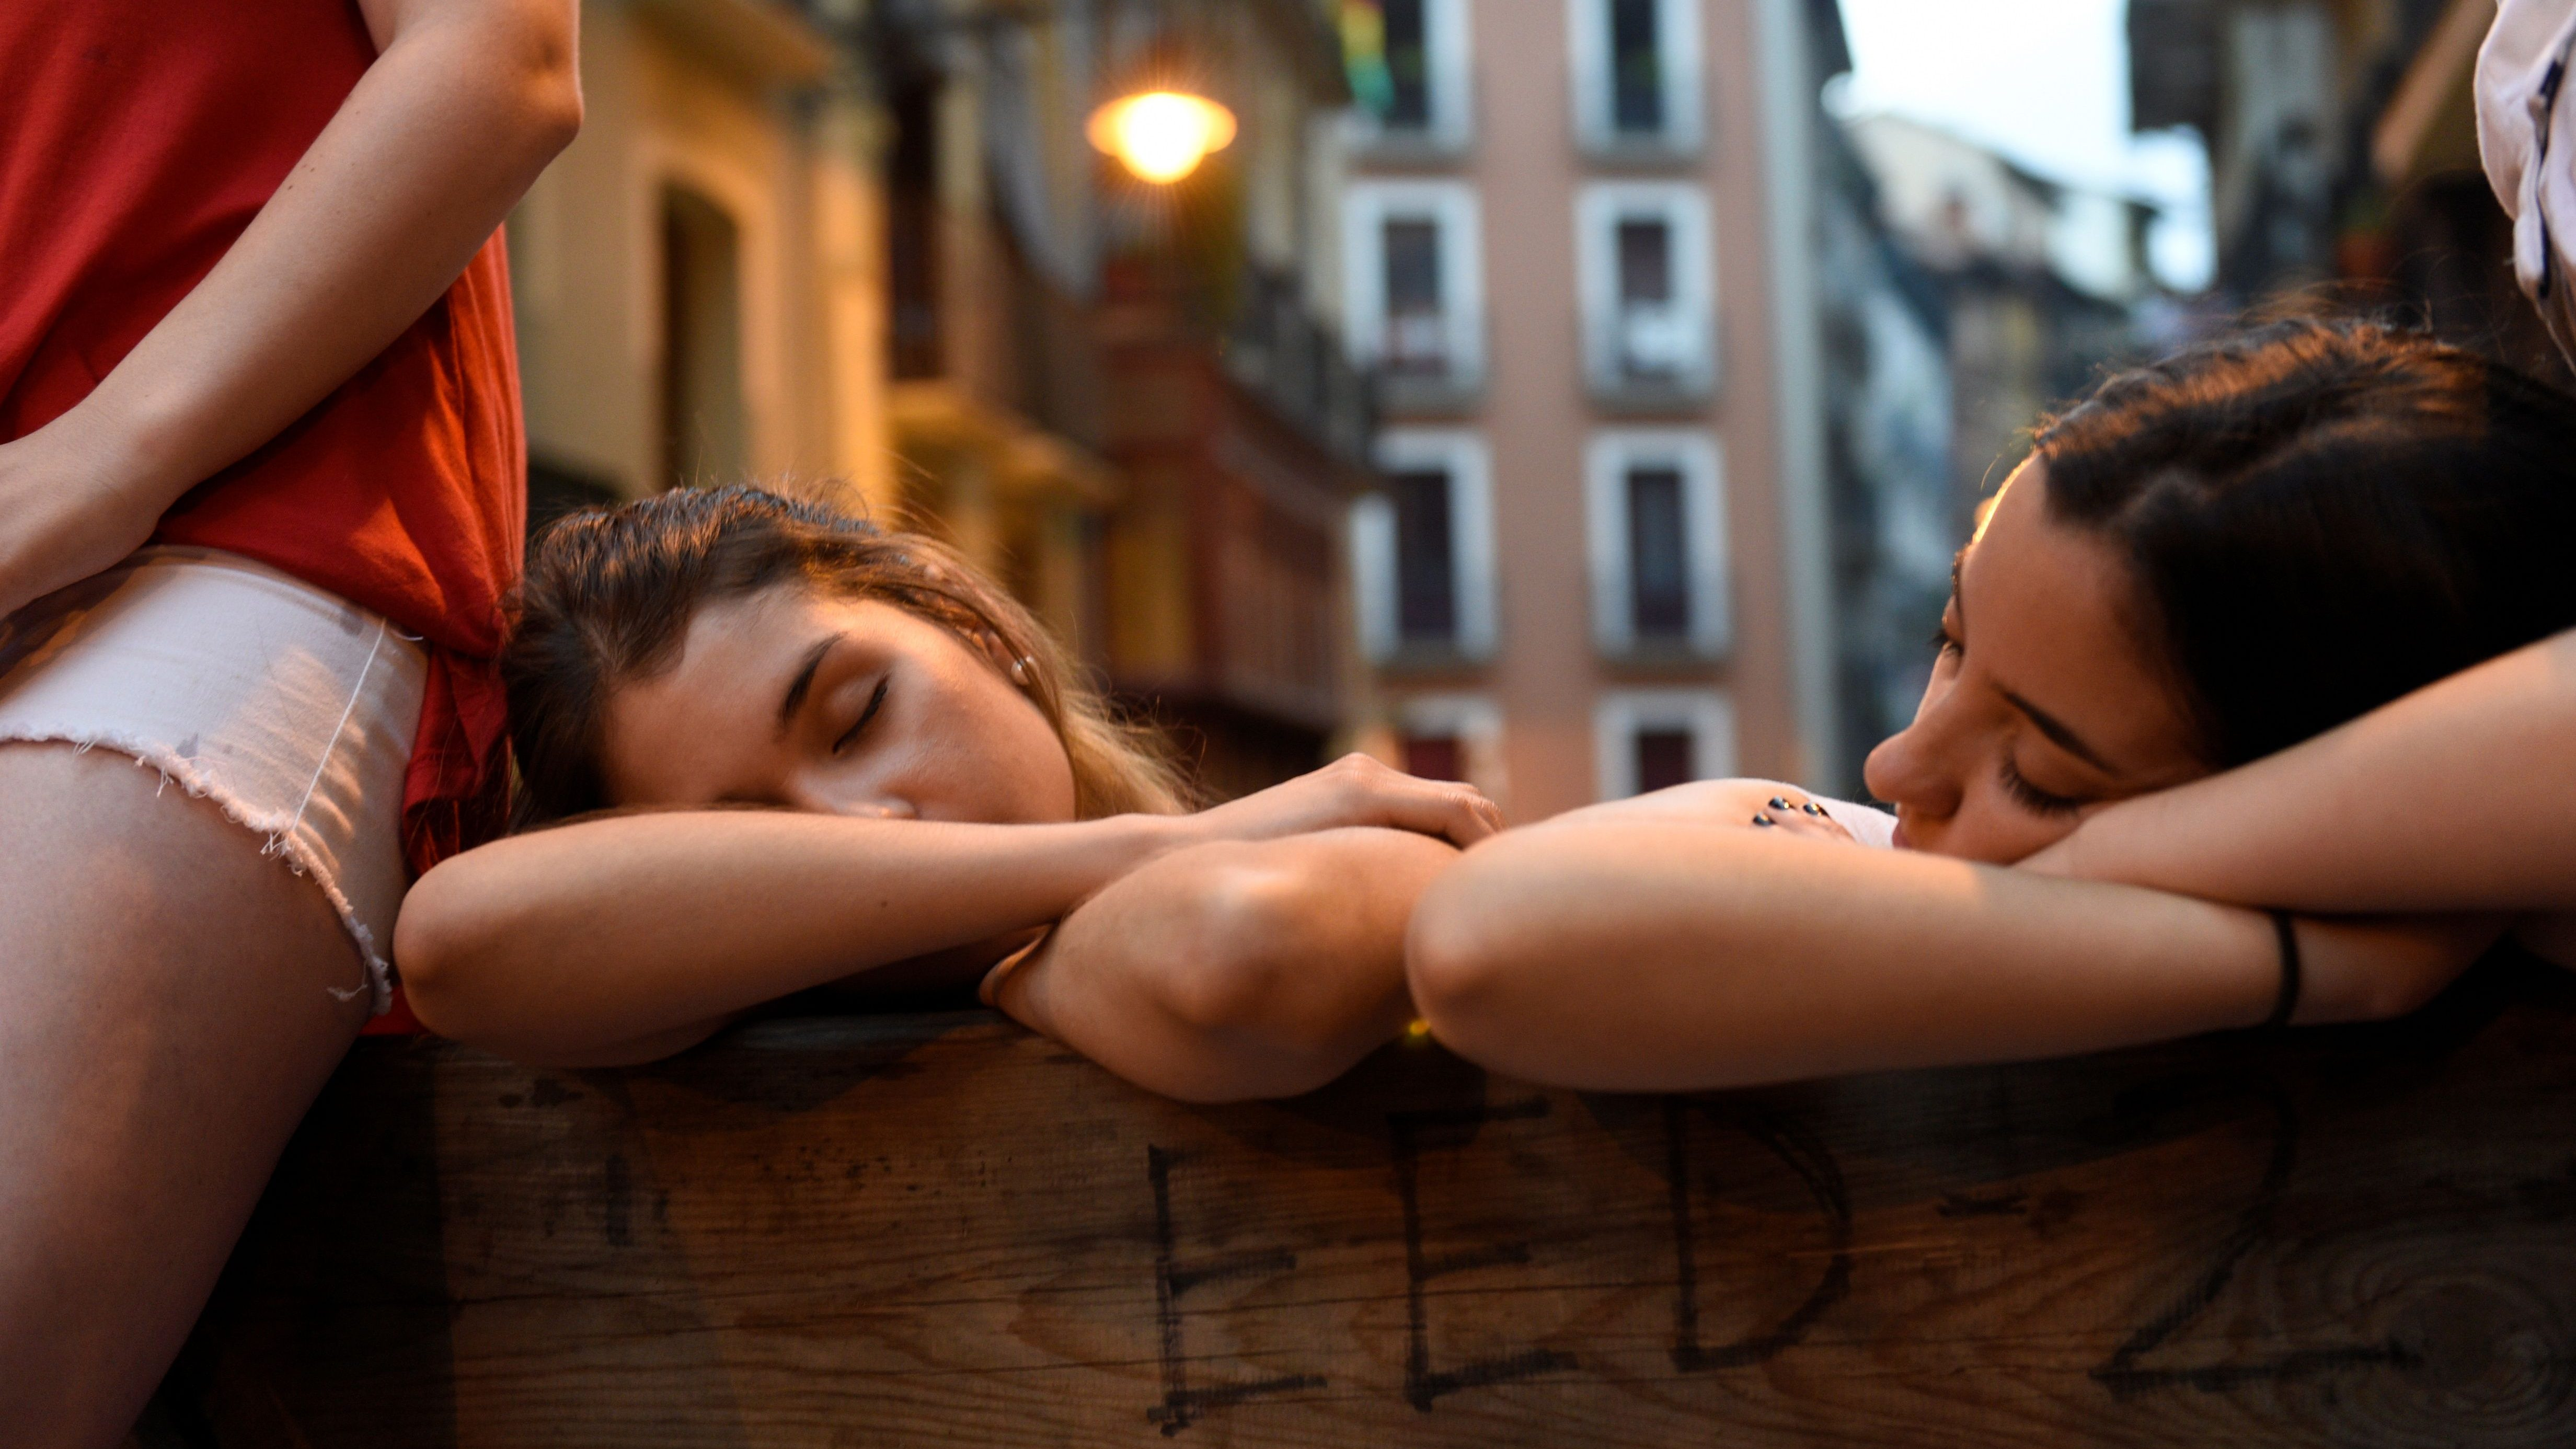 A Stanford neurologist's nine simple tips for quality sleep